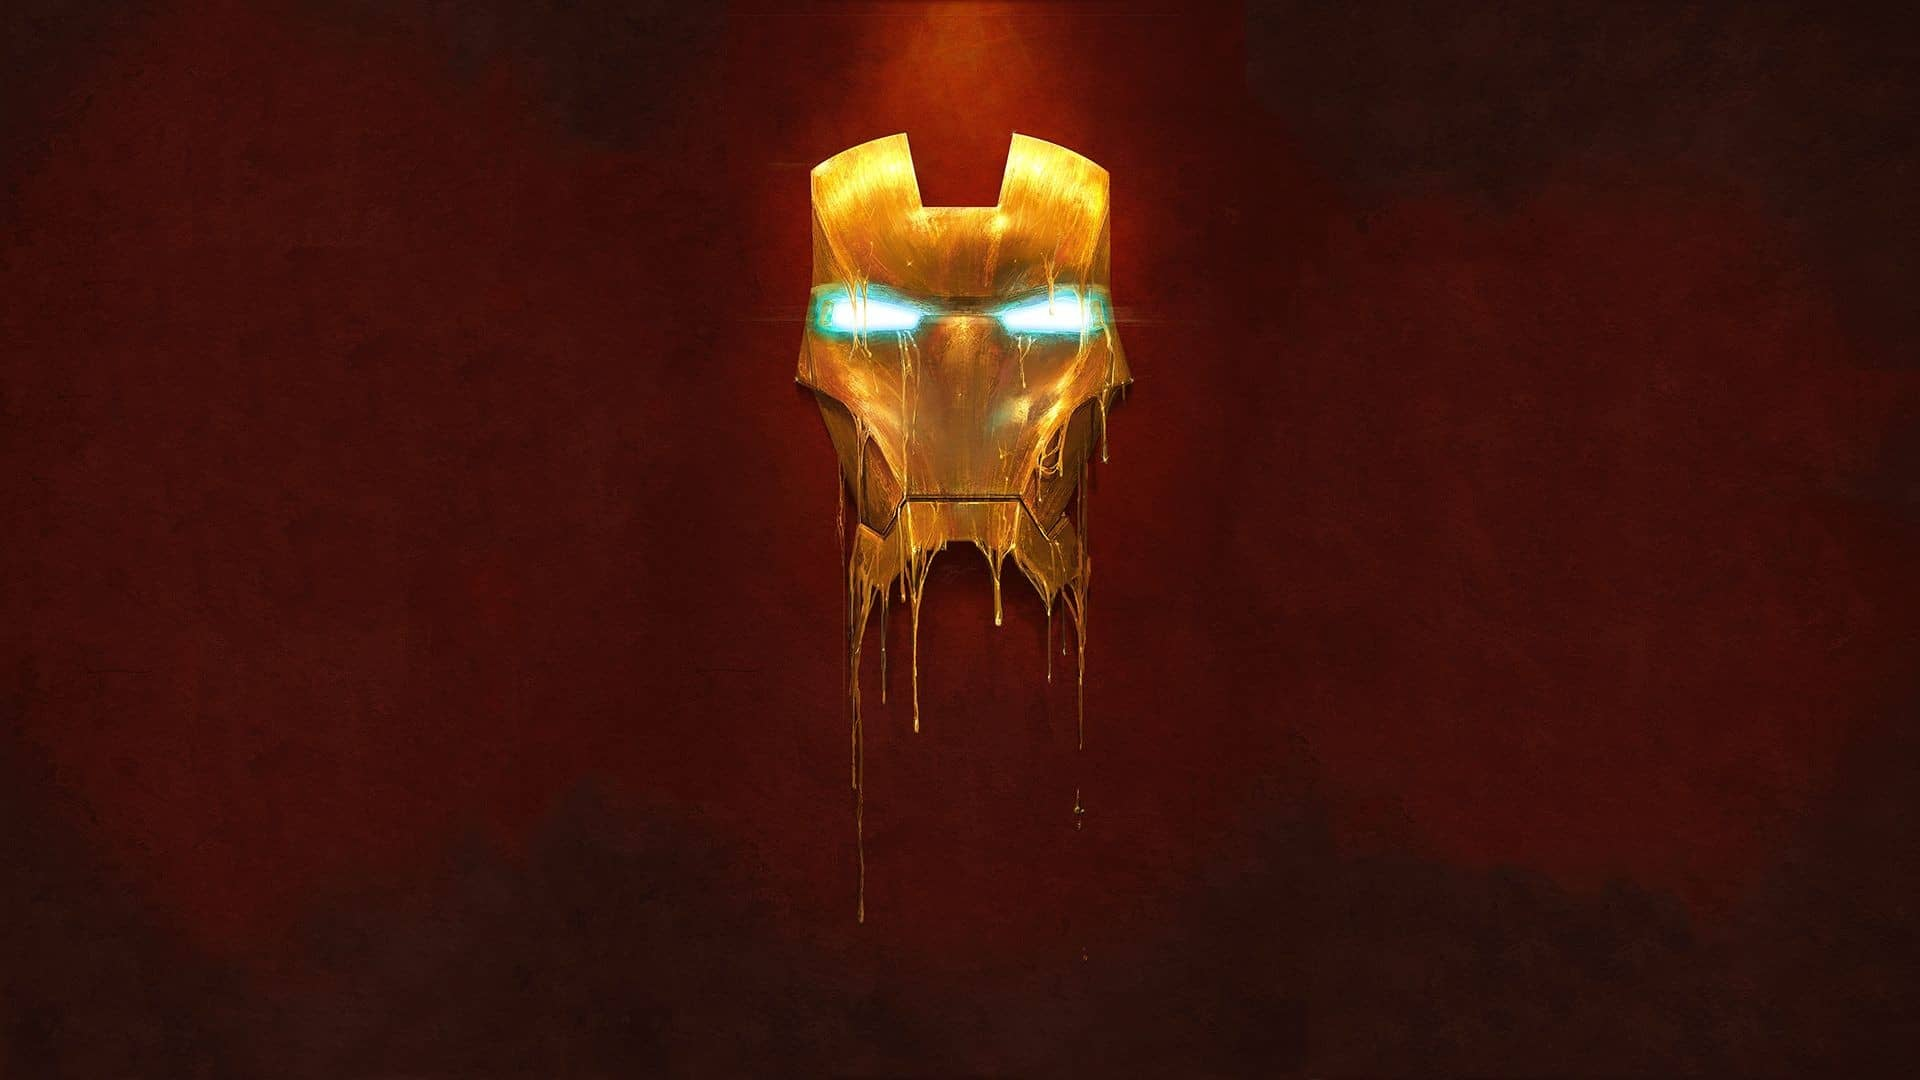 Iron man 3 wallpaper download authors review voltagebd Gallery